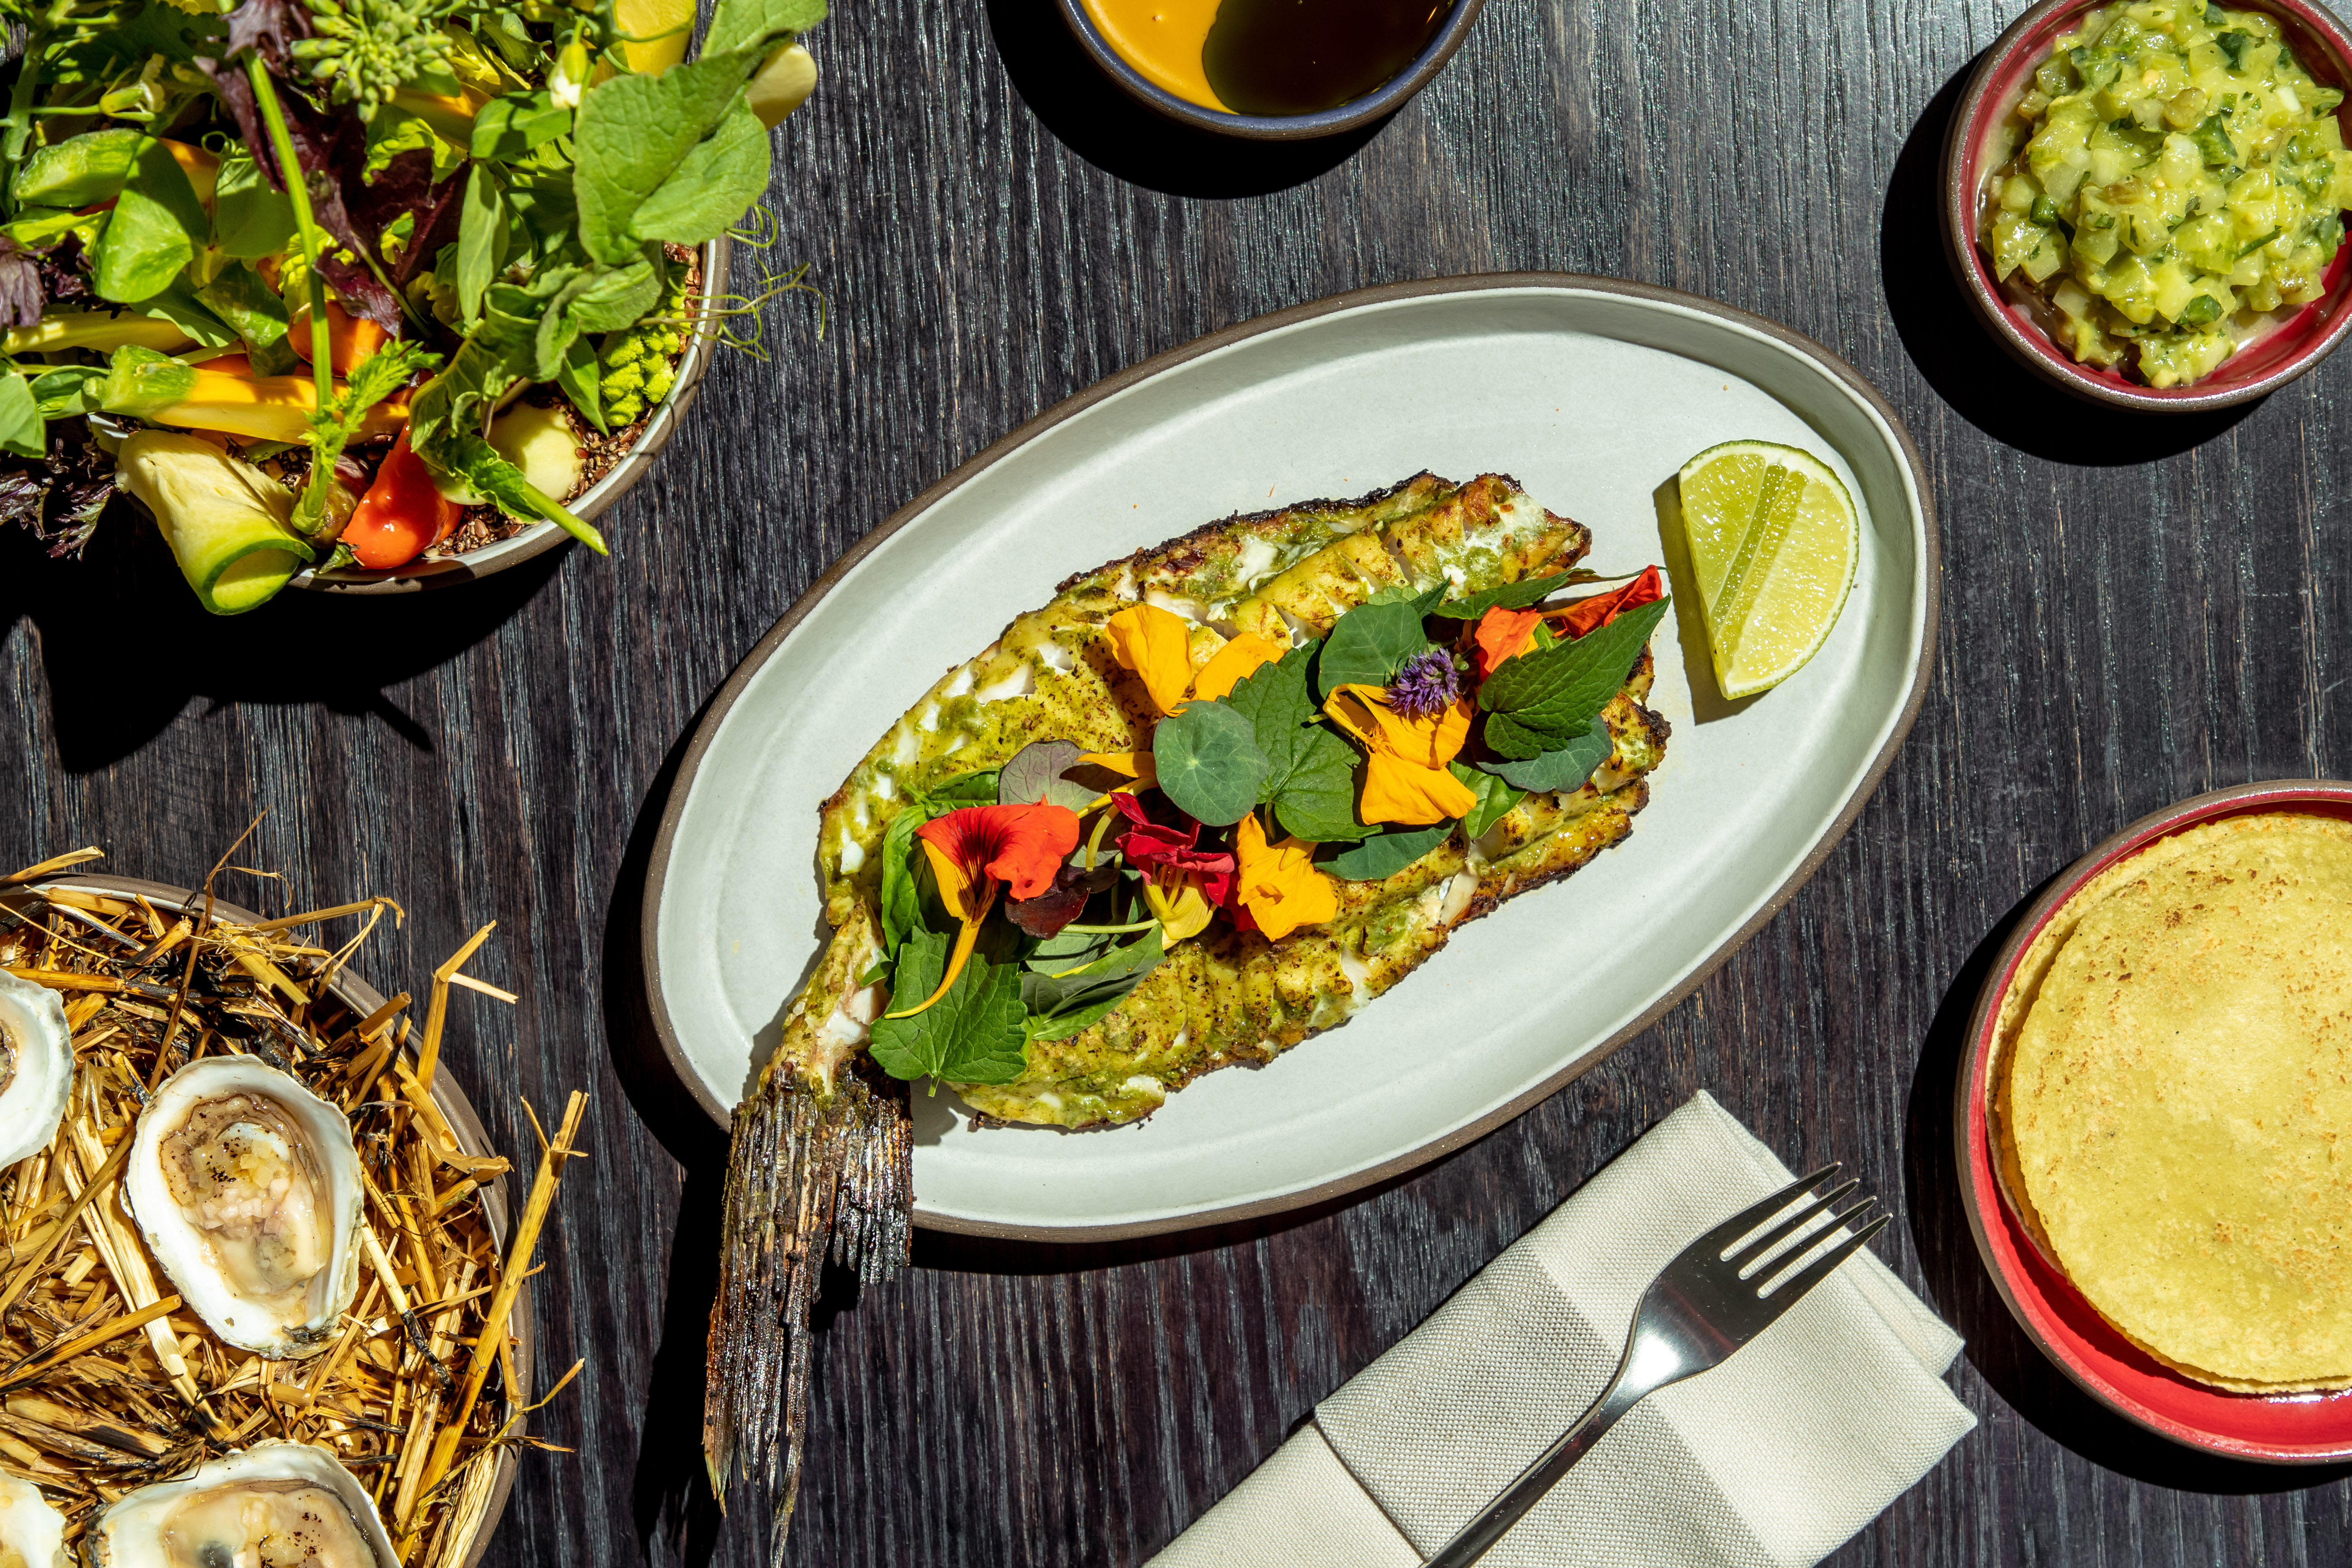 Bass with green salsa and tortillas sit alongside hay-roasted oysters